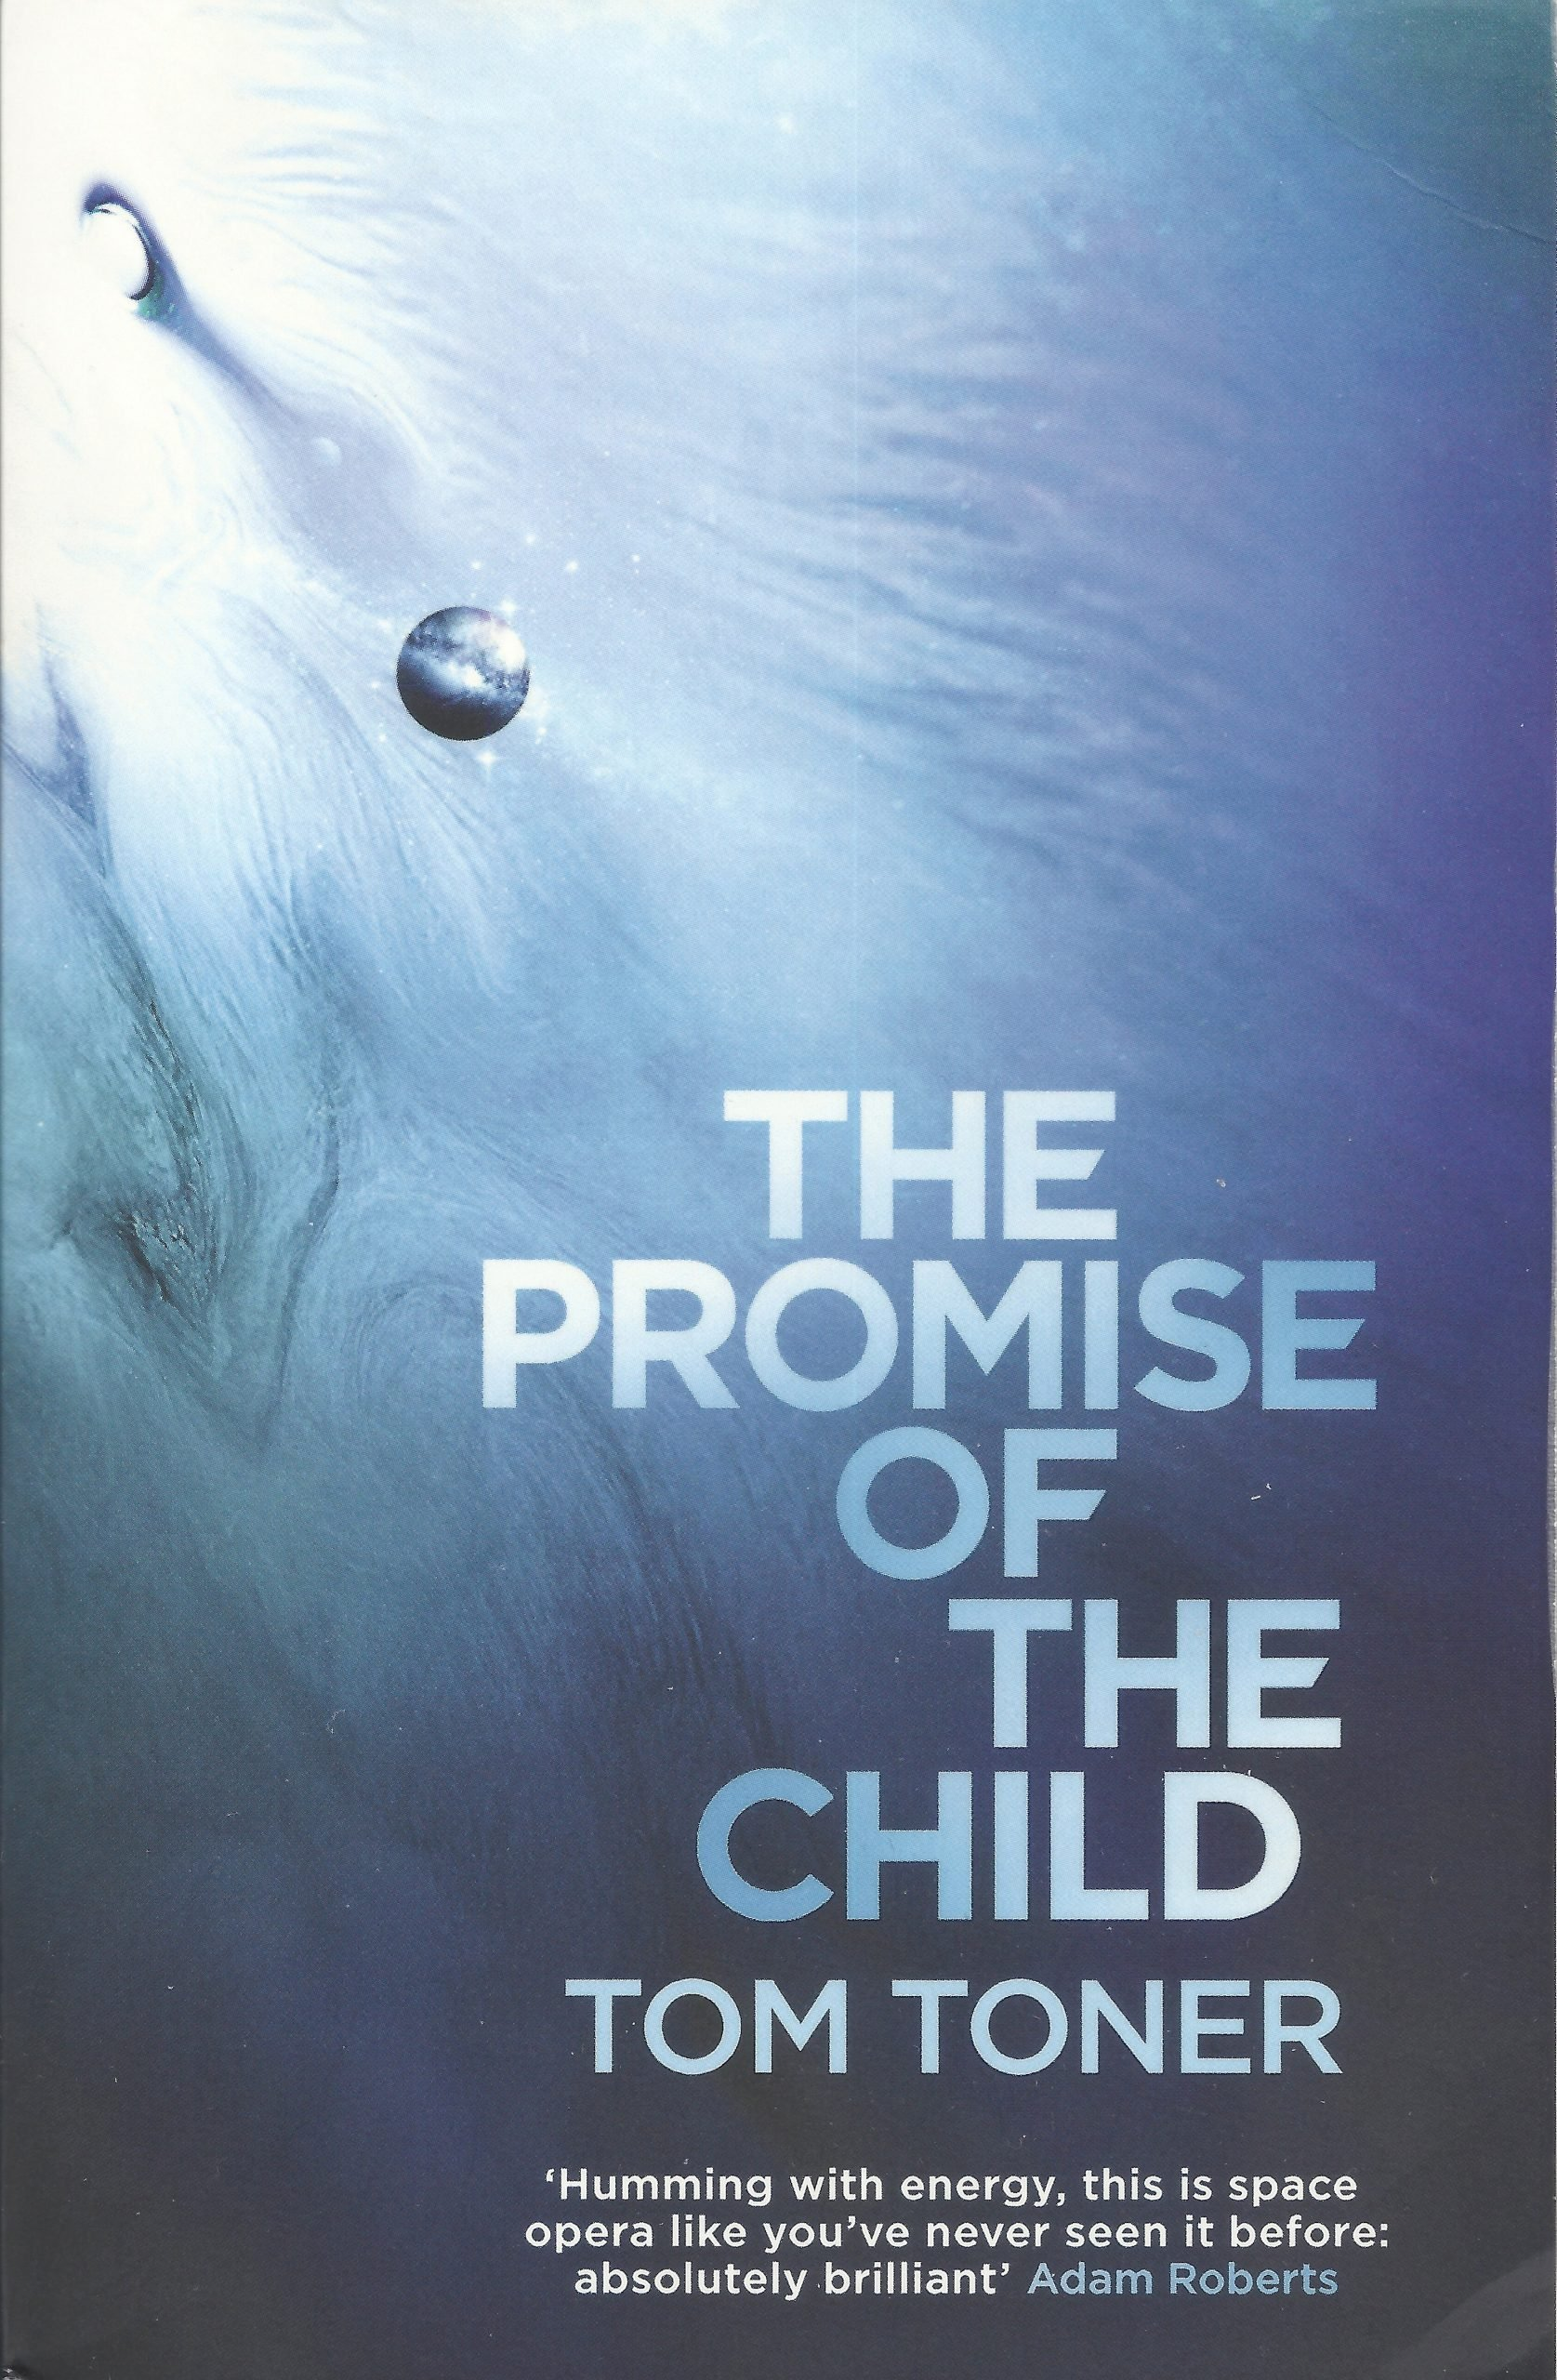 The Promise of the Child by Tom Toner